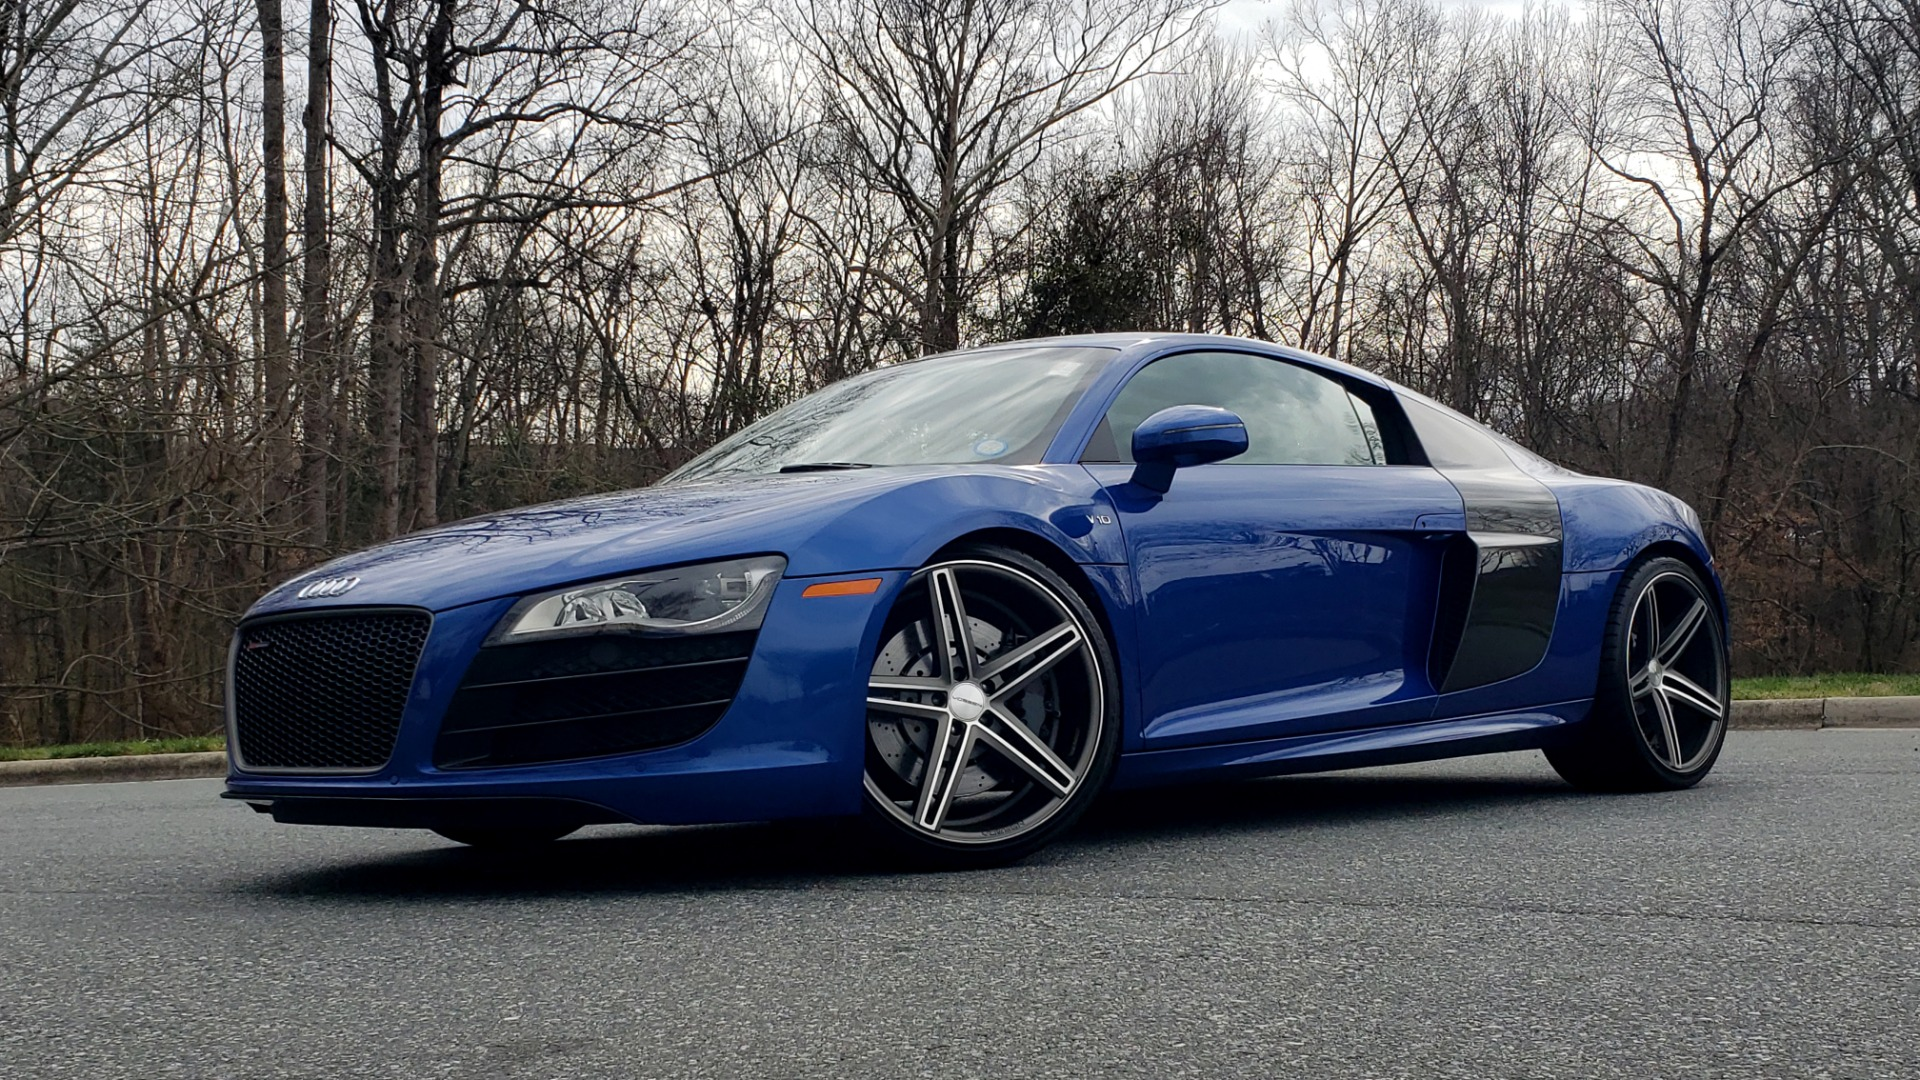 Used 2010 Audi R8 5.2L V10 / AWD / NAV / B&O SND / HTD STS / CUSTOM EXH & WHEELS for sale $78,000 at Formula Imports in Charlotte NC 28227 1